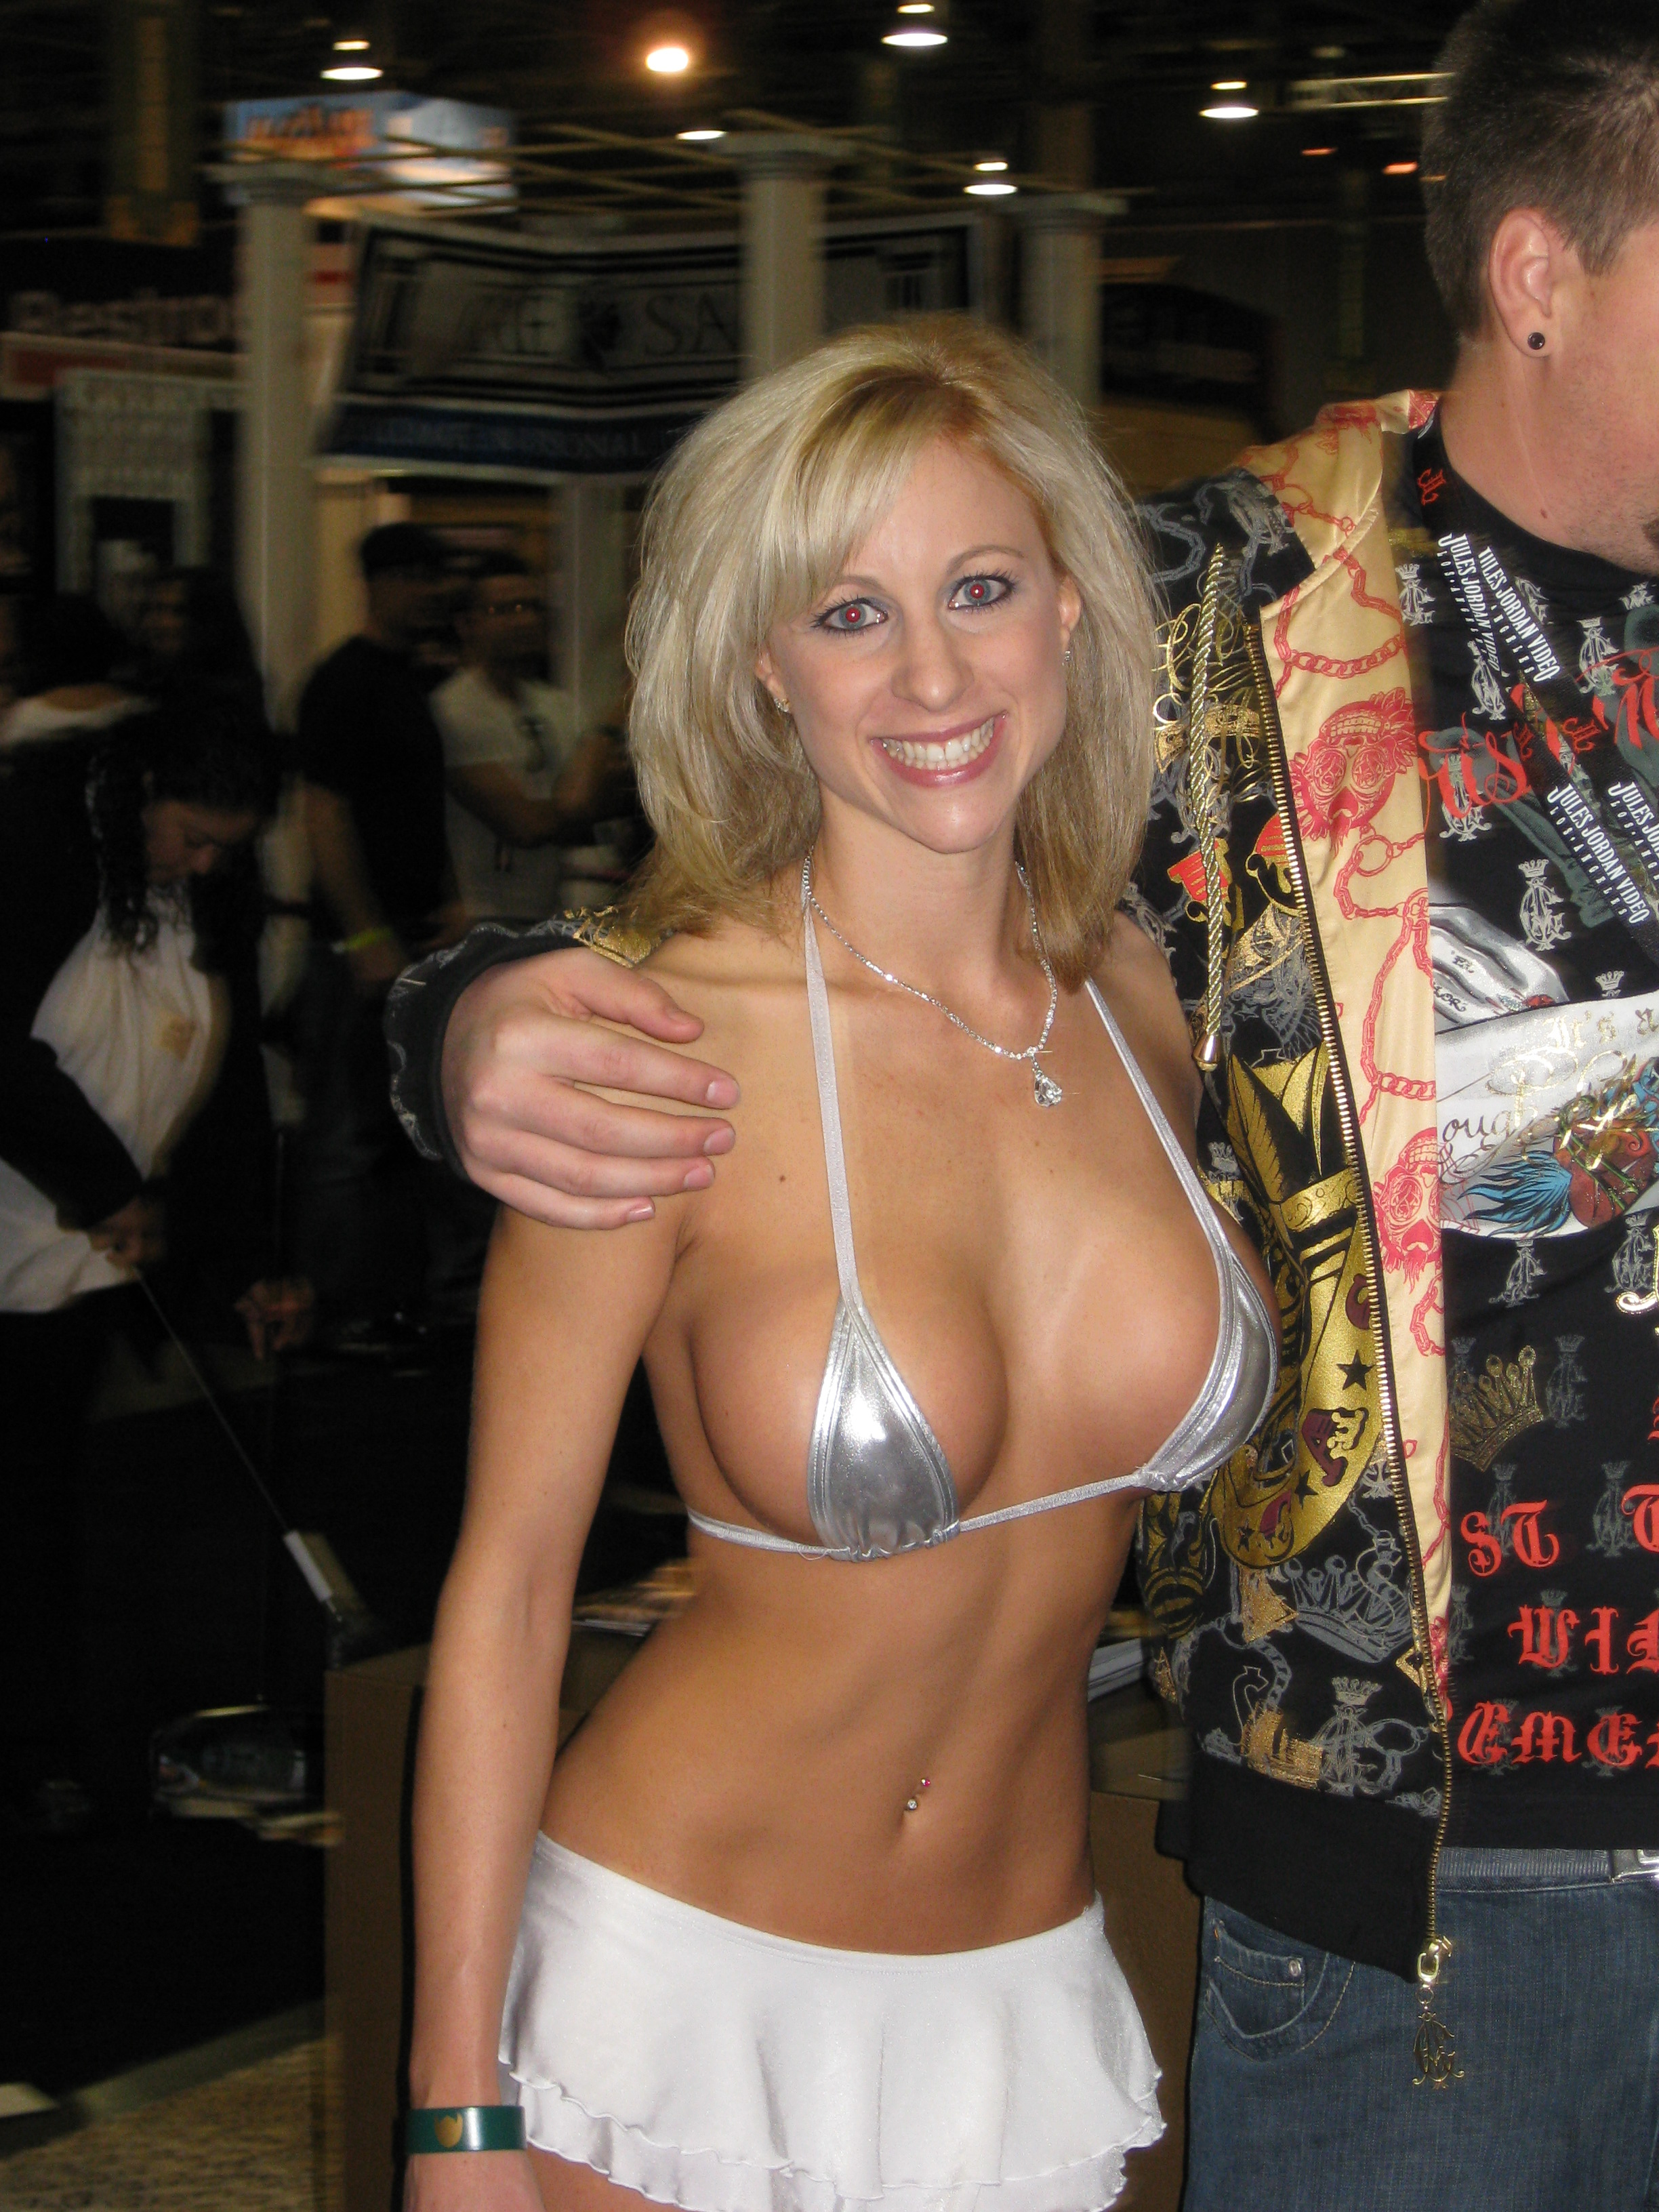 File:Unknown starlet at AVN Adult Entertainment Expo 2008